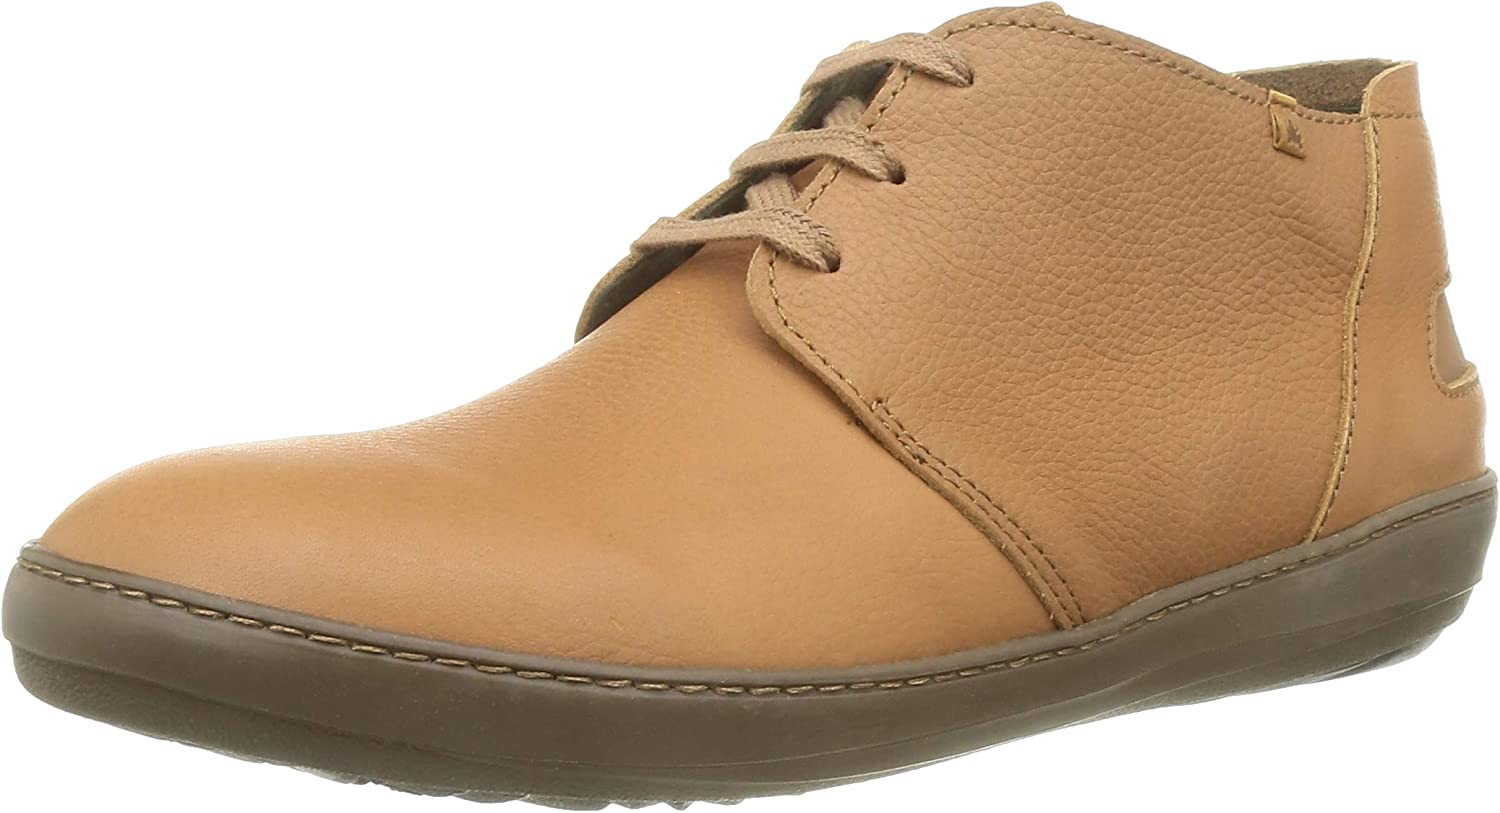 Max 48% OFF El Naturalista Men's Classic Ankle 2021 autumn and winter new Boots